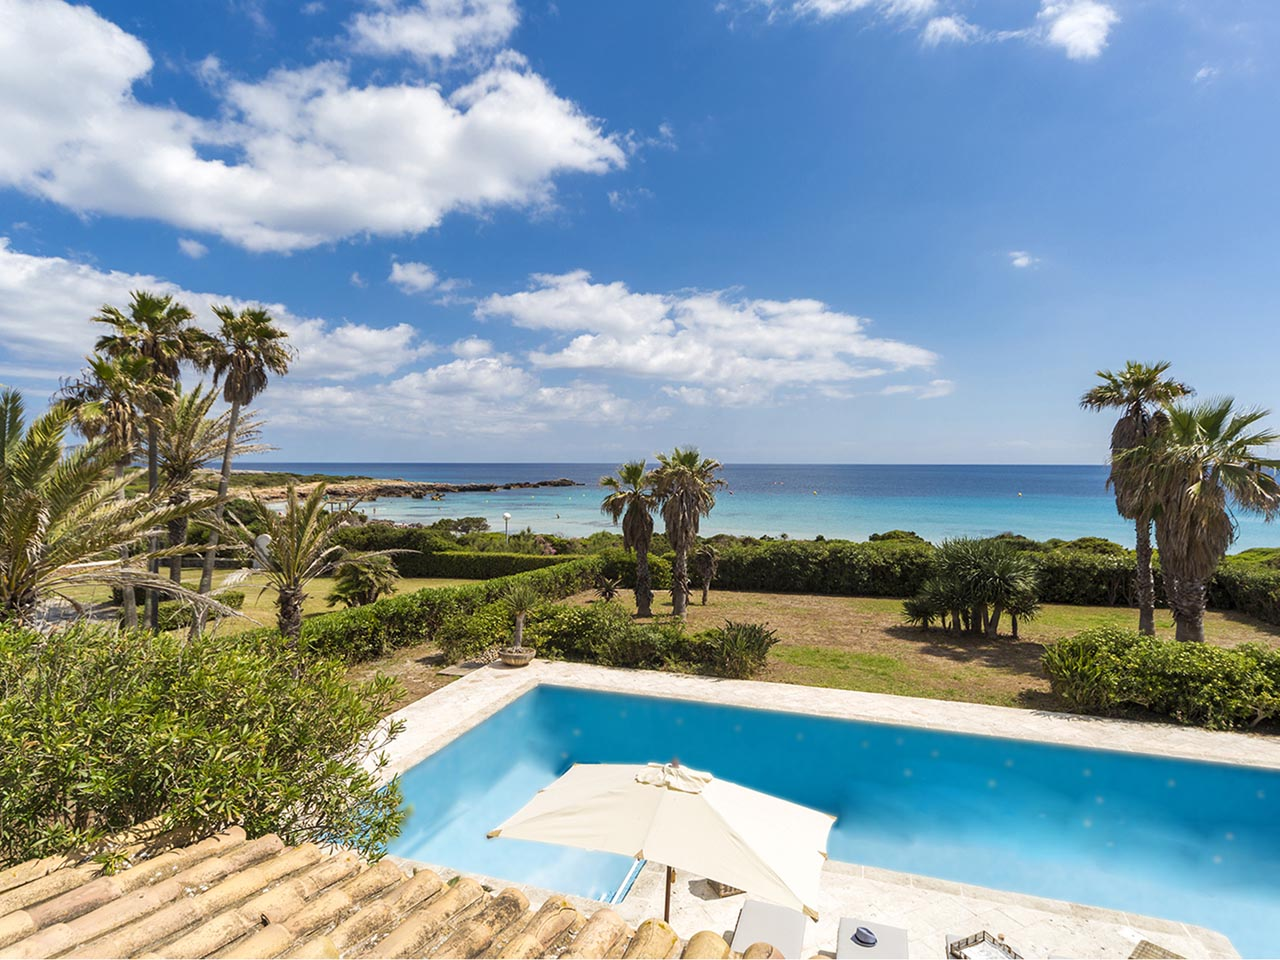 Menorca real estate: 15 percent rise in residential property prices